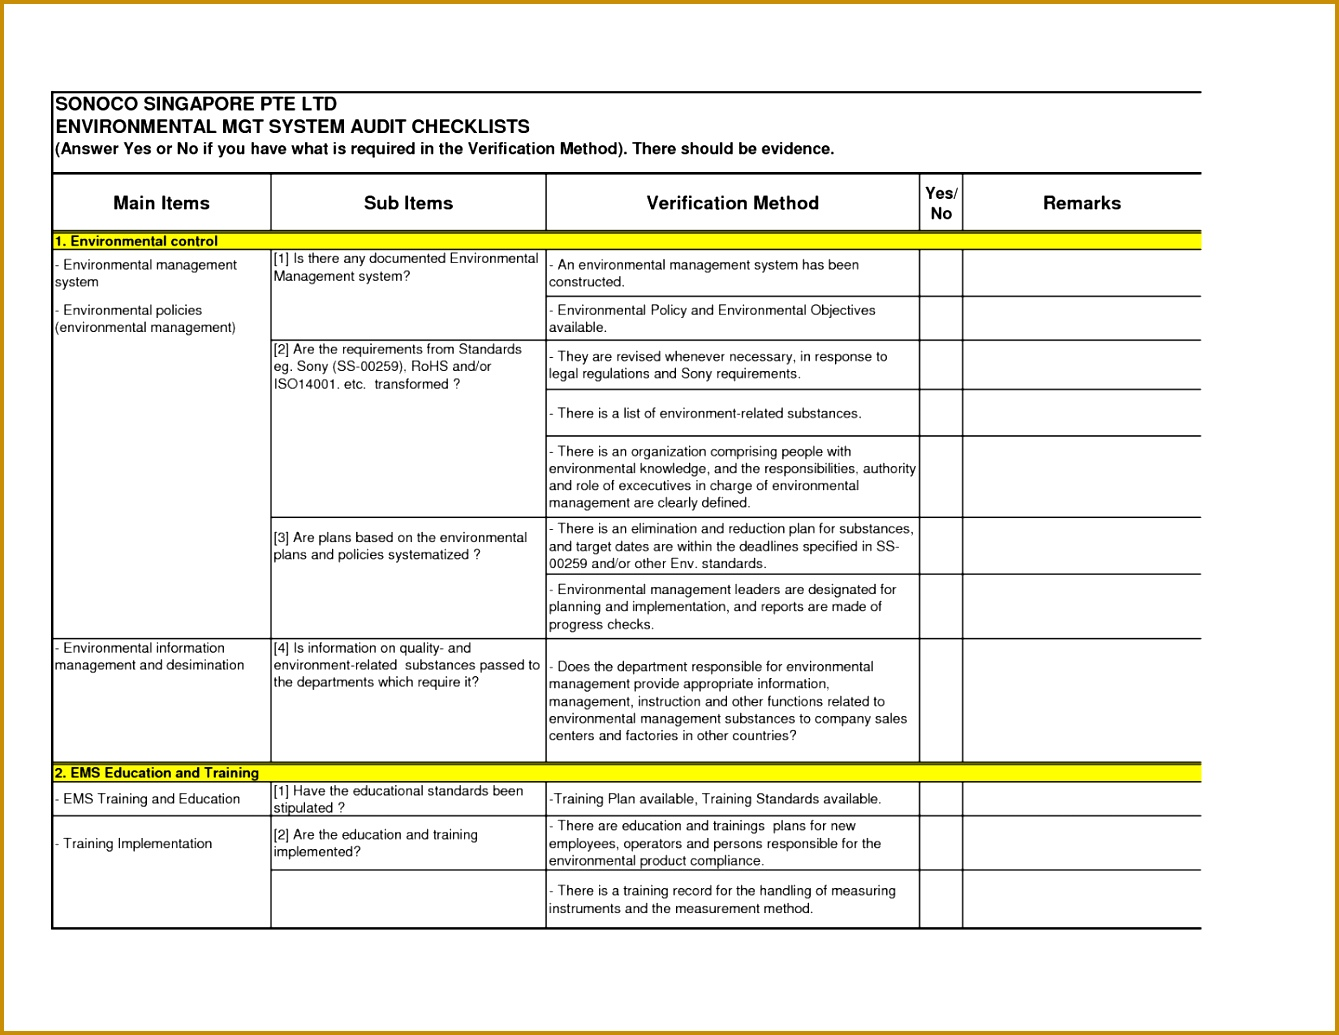 Business Checklist Templates Behavior Checklist Template Business Audit Forms Templates Personal Loan Document Template Printable Internal 10351339